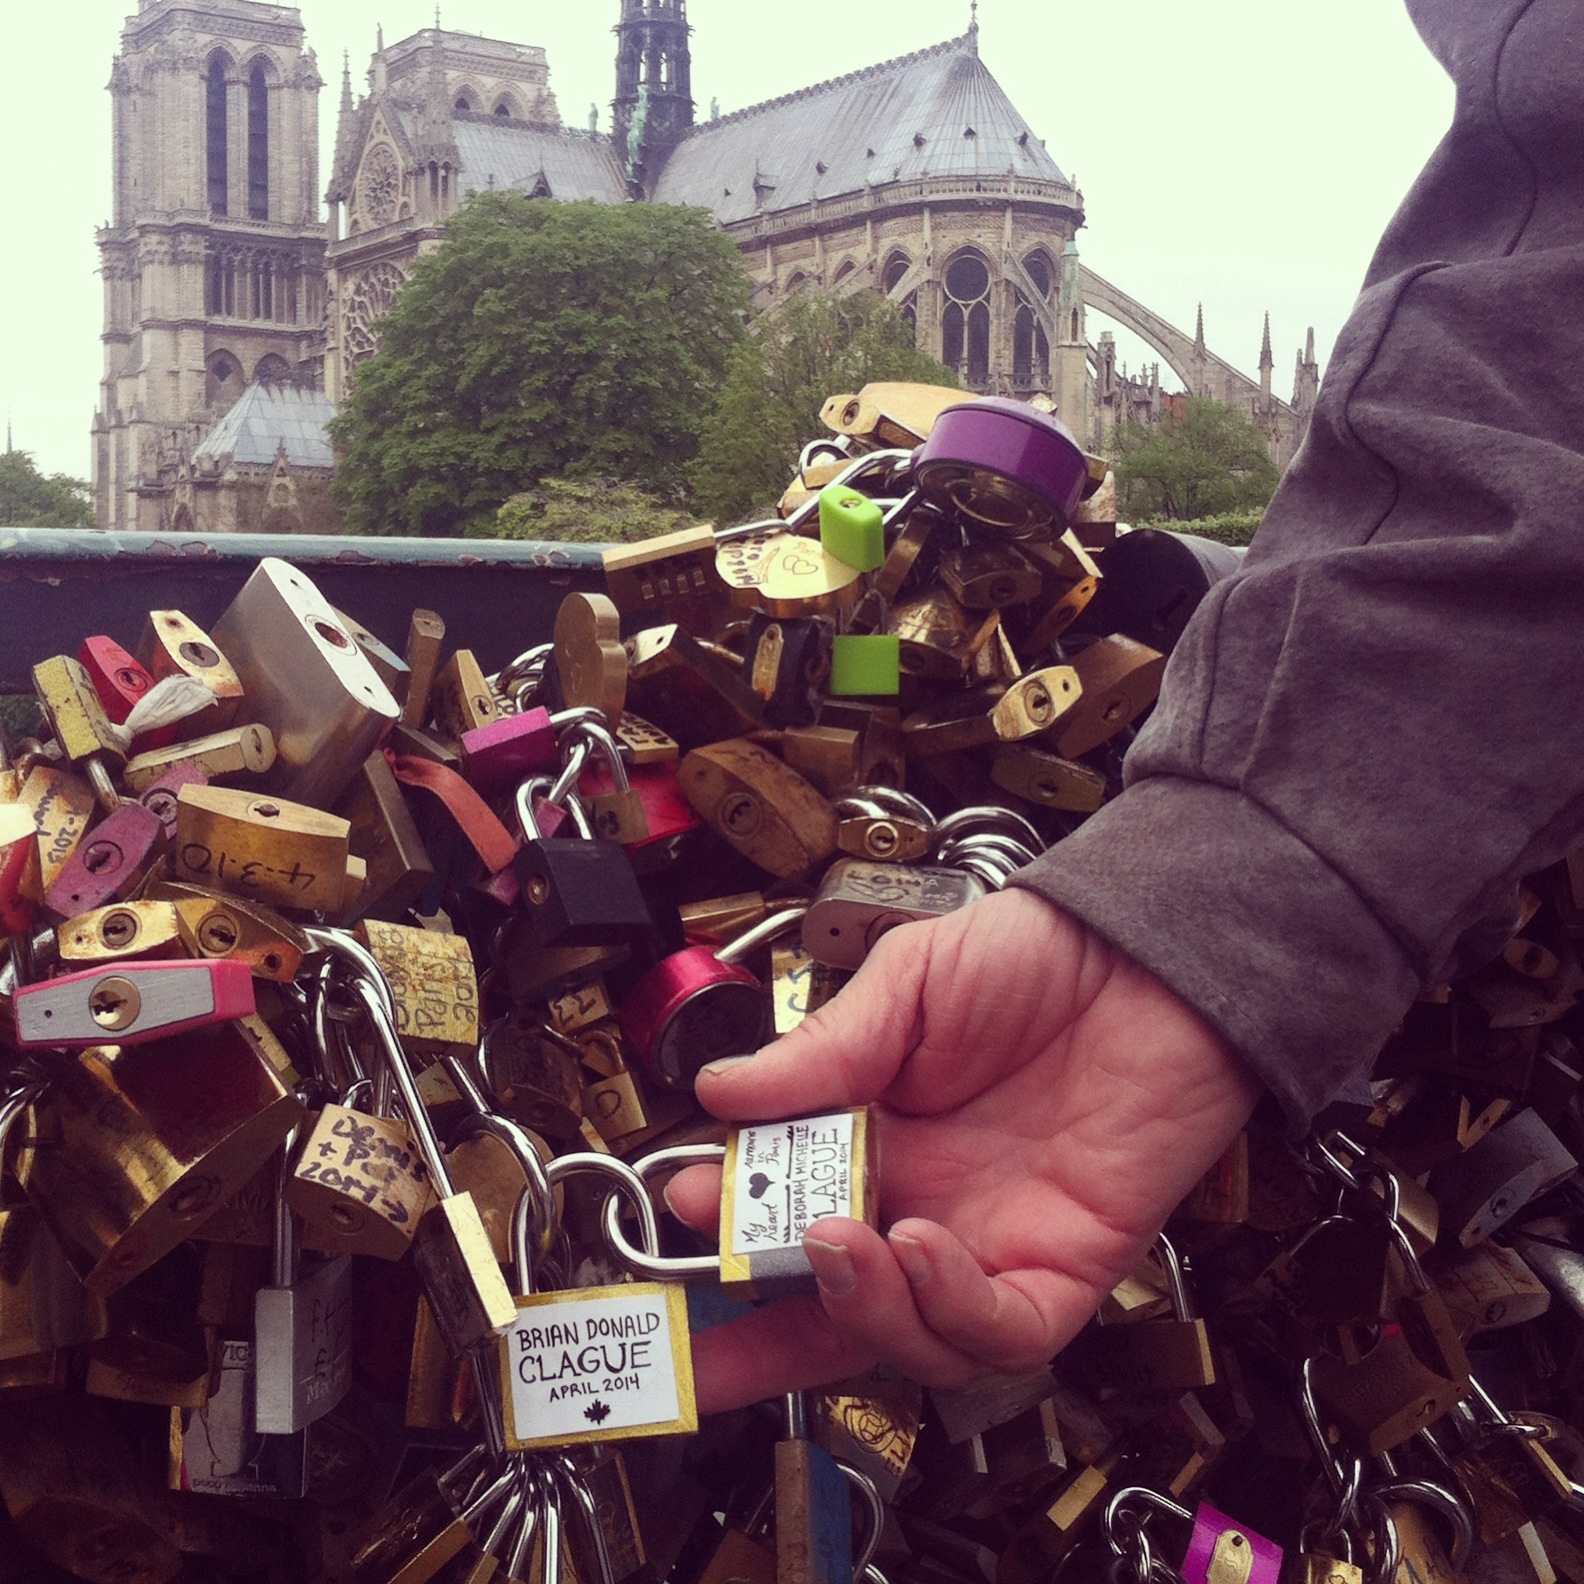 Clague locks in the shadow of Notre Dame Cathedral.